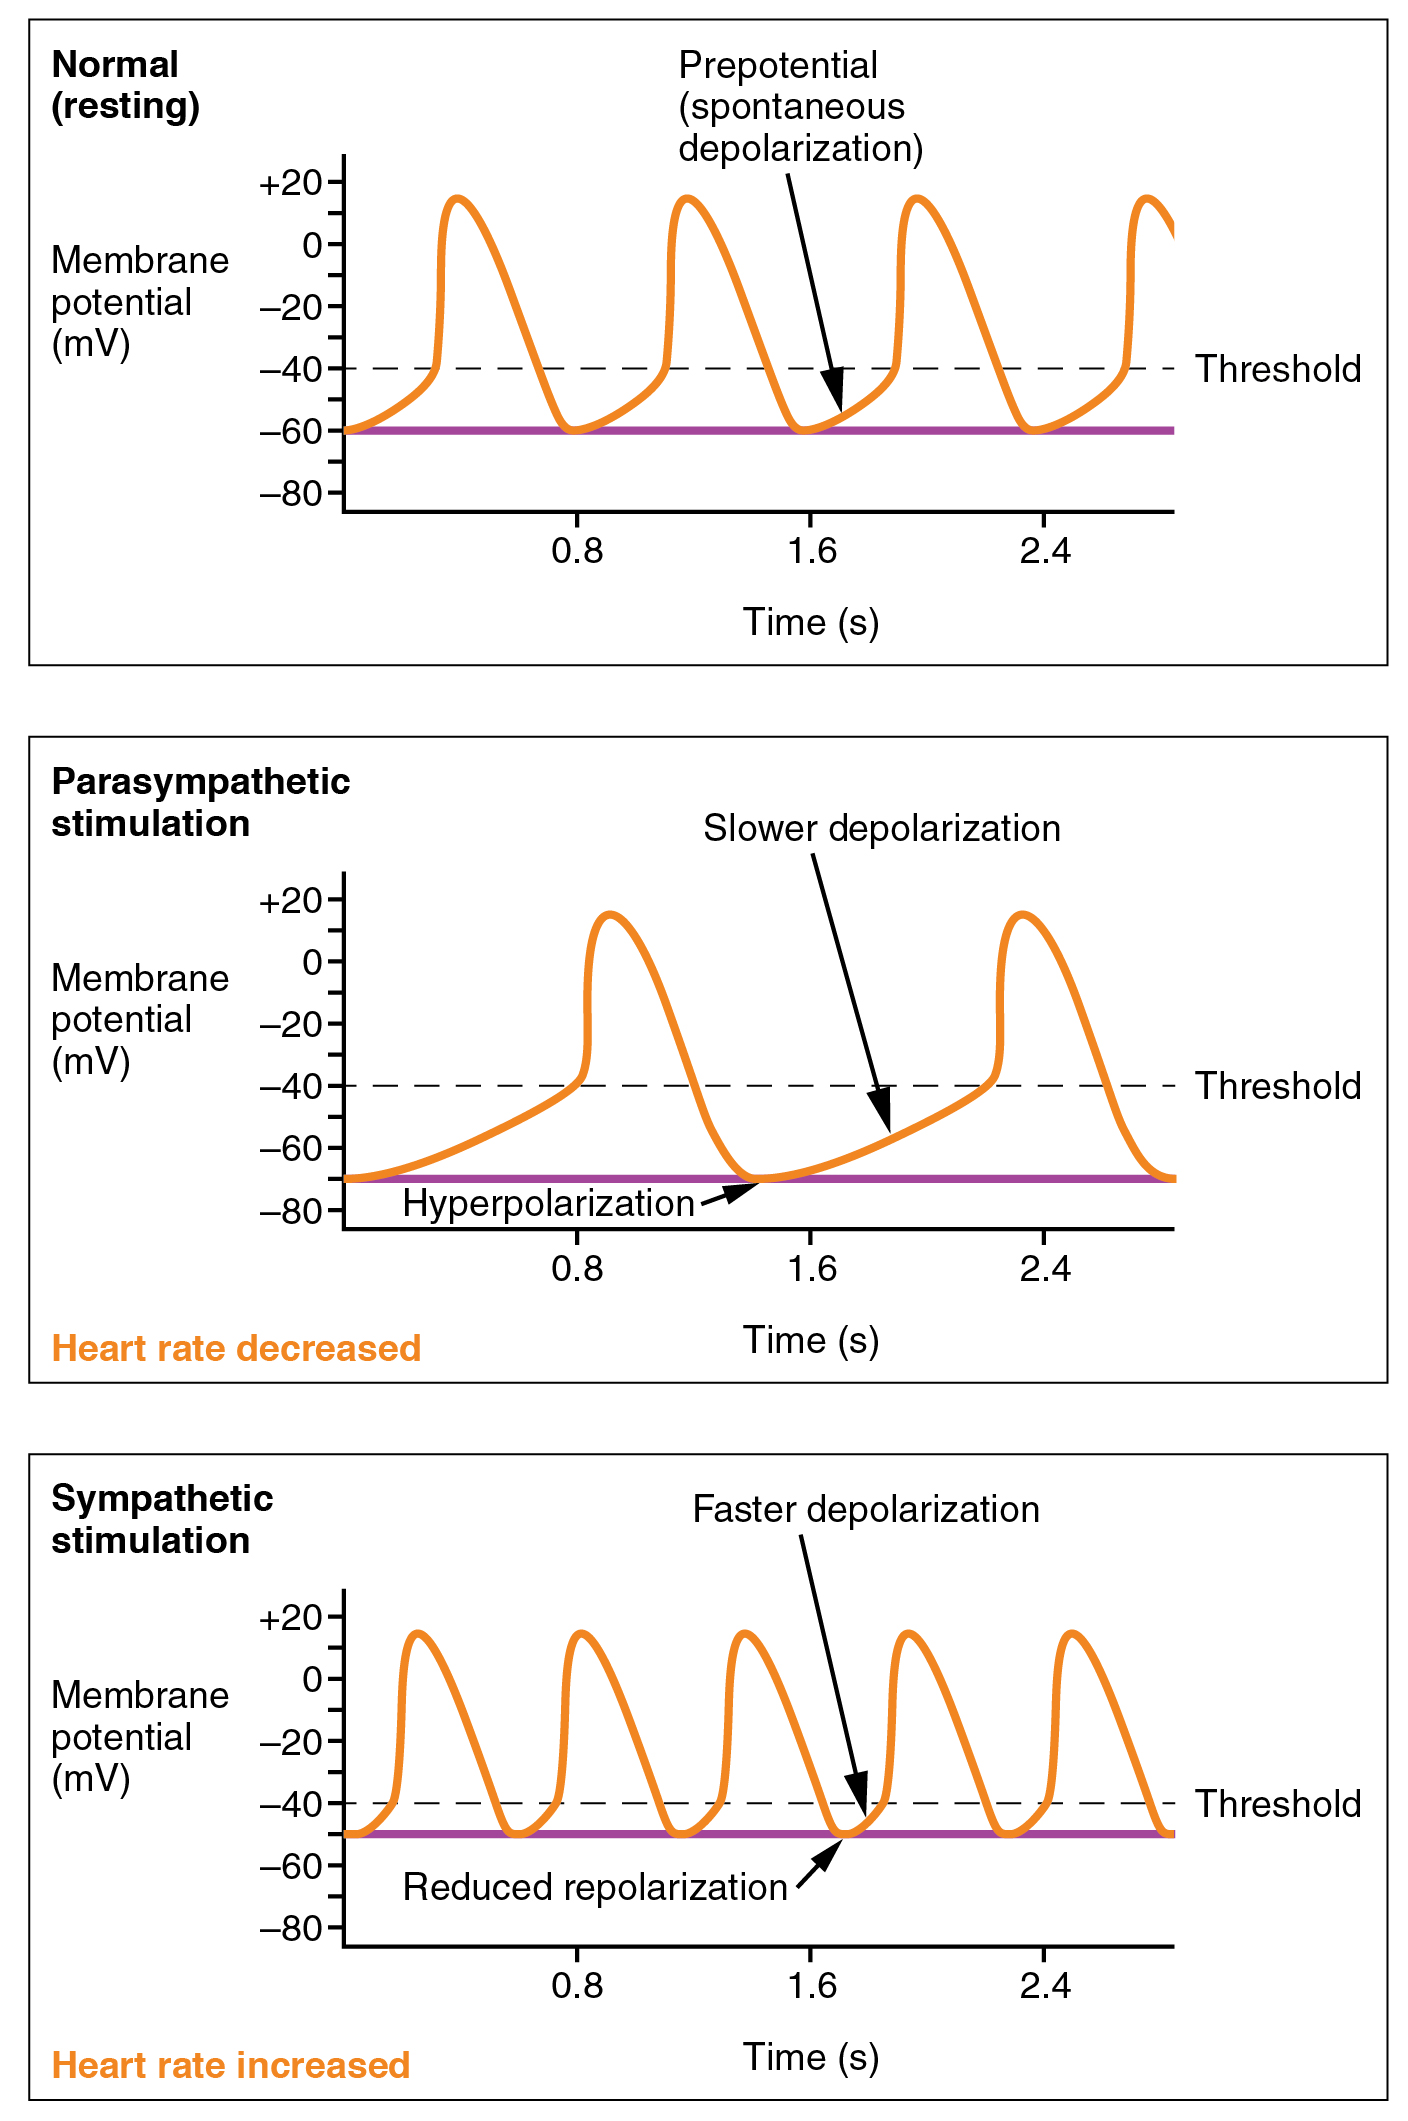 This figure shows three graphs. The top panel shows the normal or resting potential with time. The middle panel shows membrane potential with time in a parasympathetic stimulation where the heart rate is decreased. The bottom panel shows membrane potential with time in a sympathetic stimulation with increased heart rate.